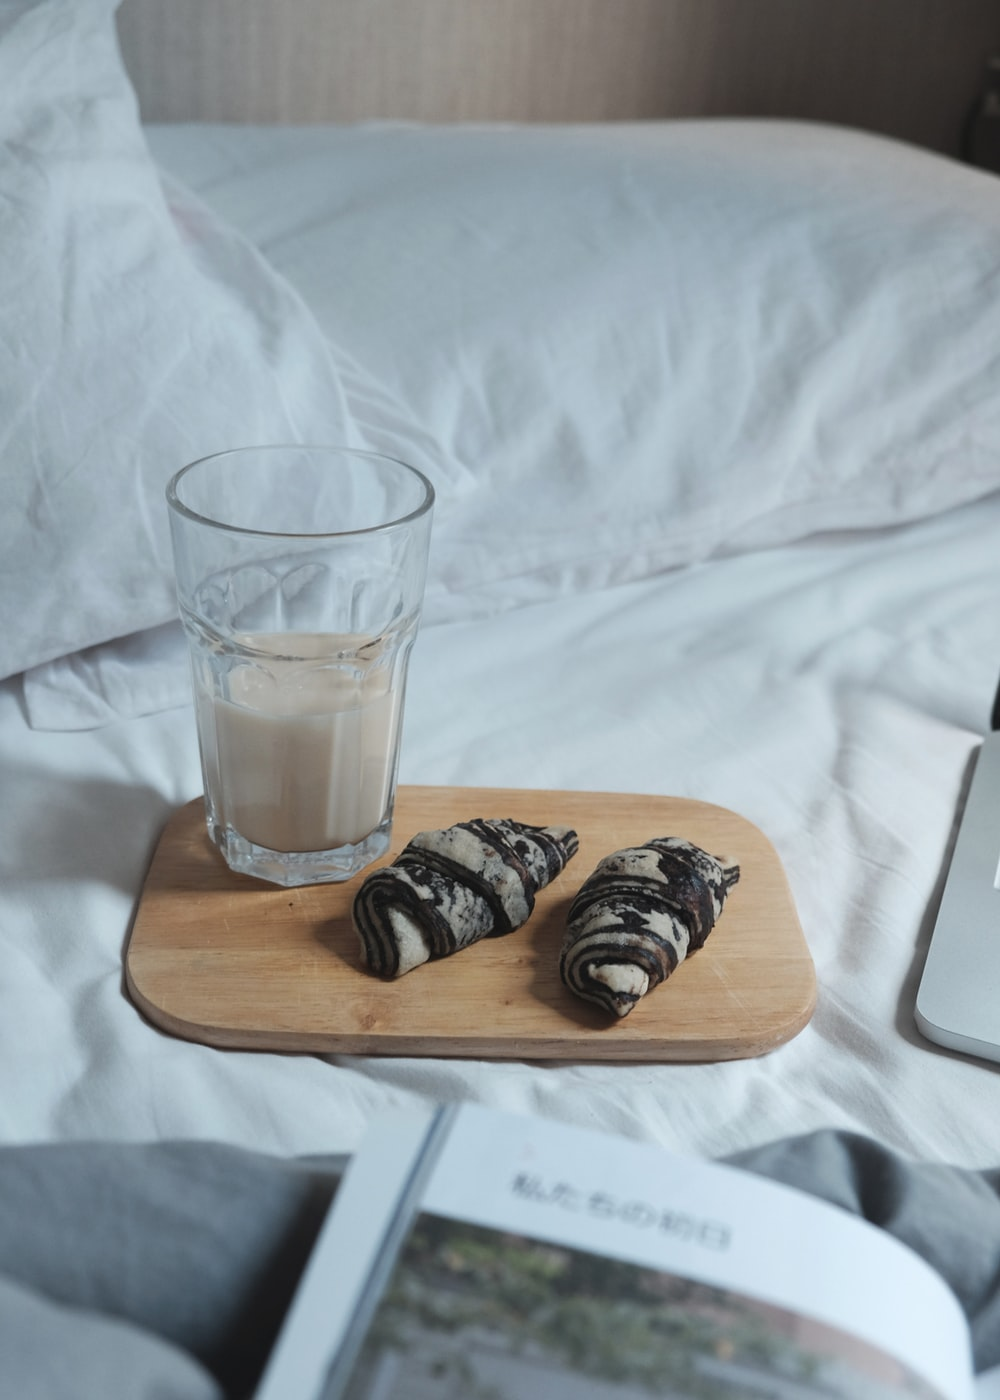 drinking glass filled with white liquid served on wooden board